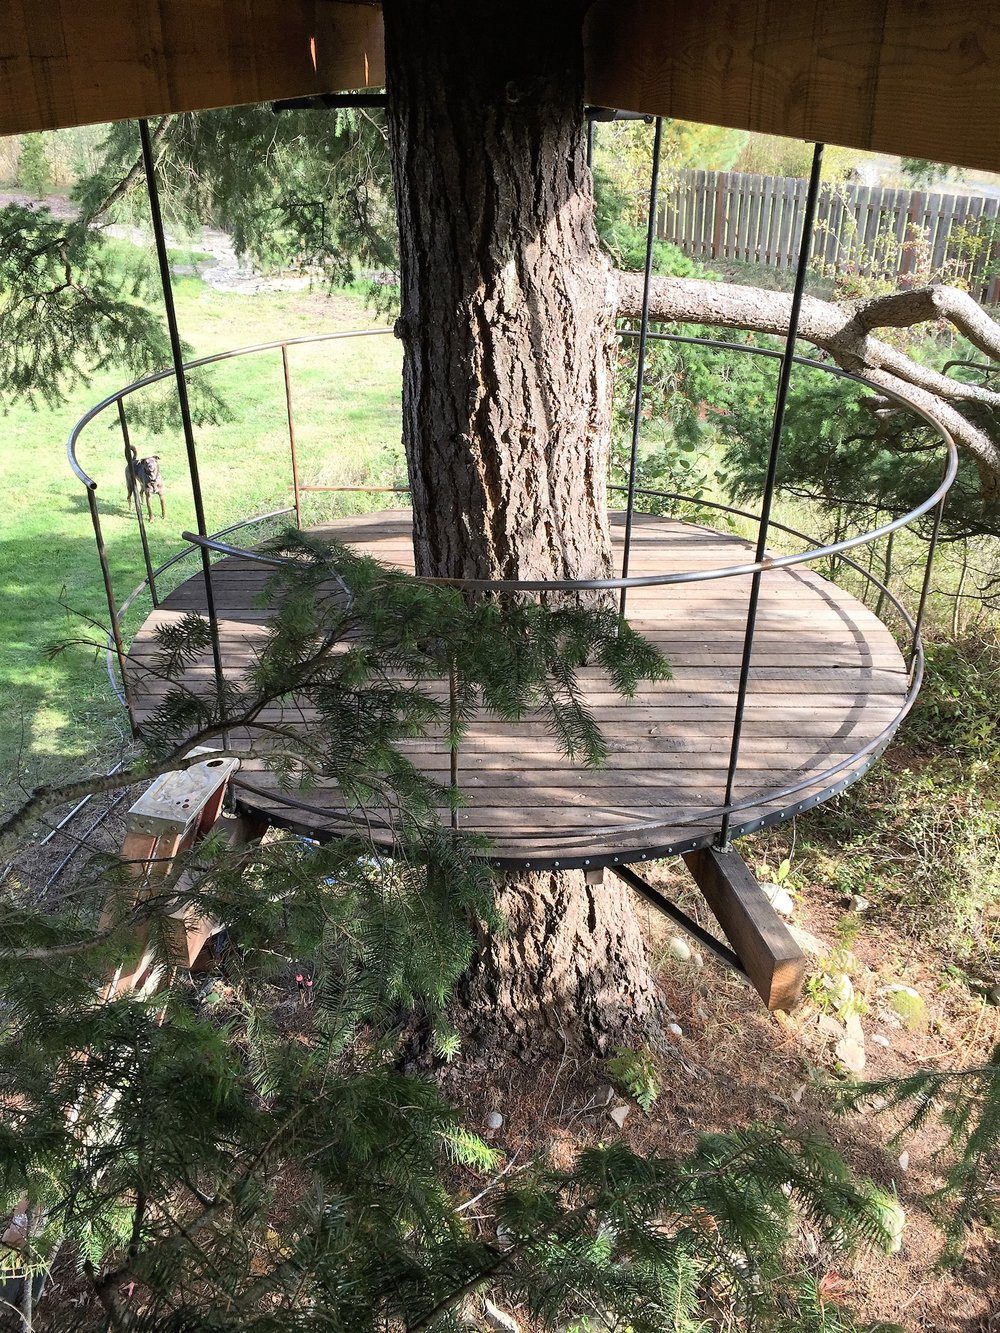 tree fort lower circular deck railing and platform around tree trunk.JPG